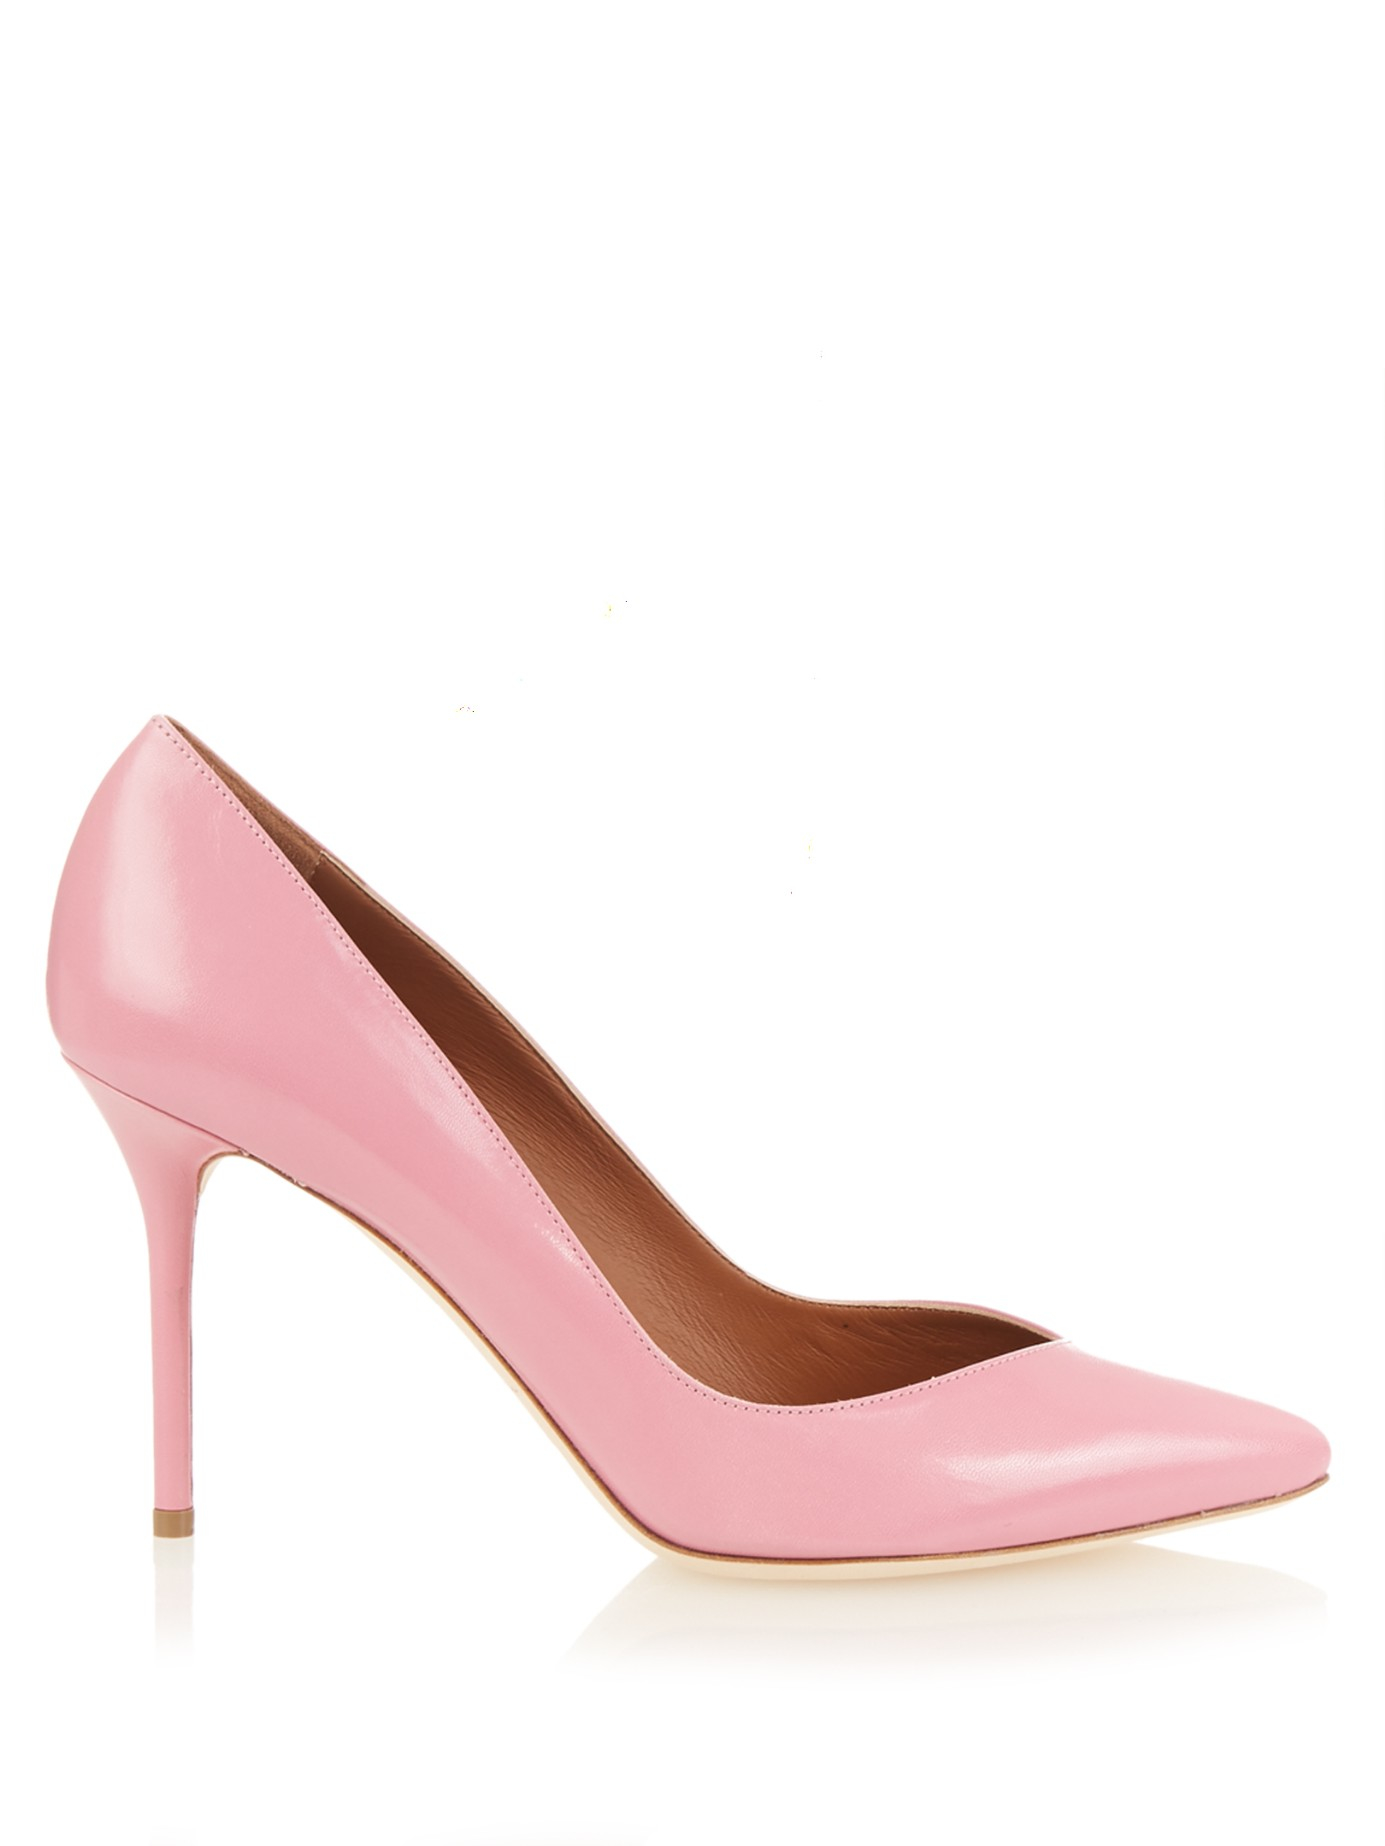 malone-souliers-pink-brenda-point-toe-leather-pumps-product-0-323264568-normal.jpeg